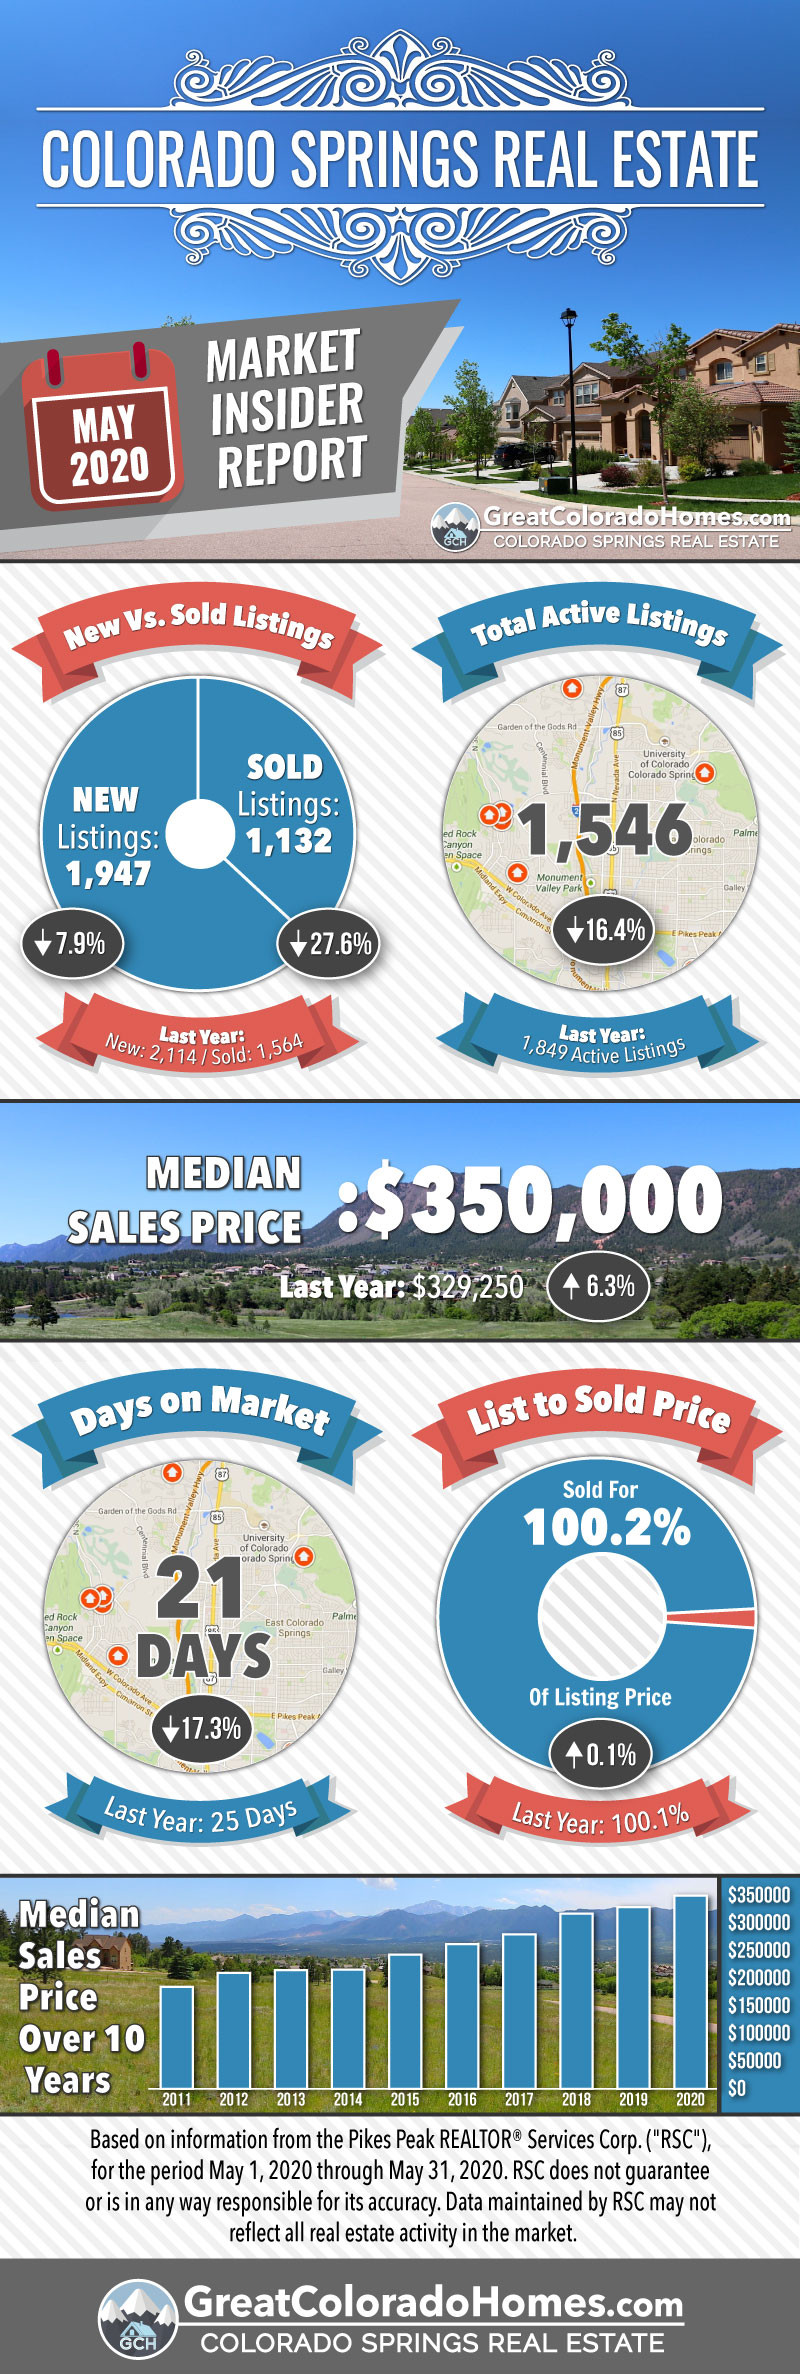 May 2020 Colorado Springs Real Estate Market Statistics Infographic